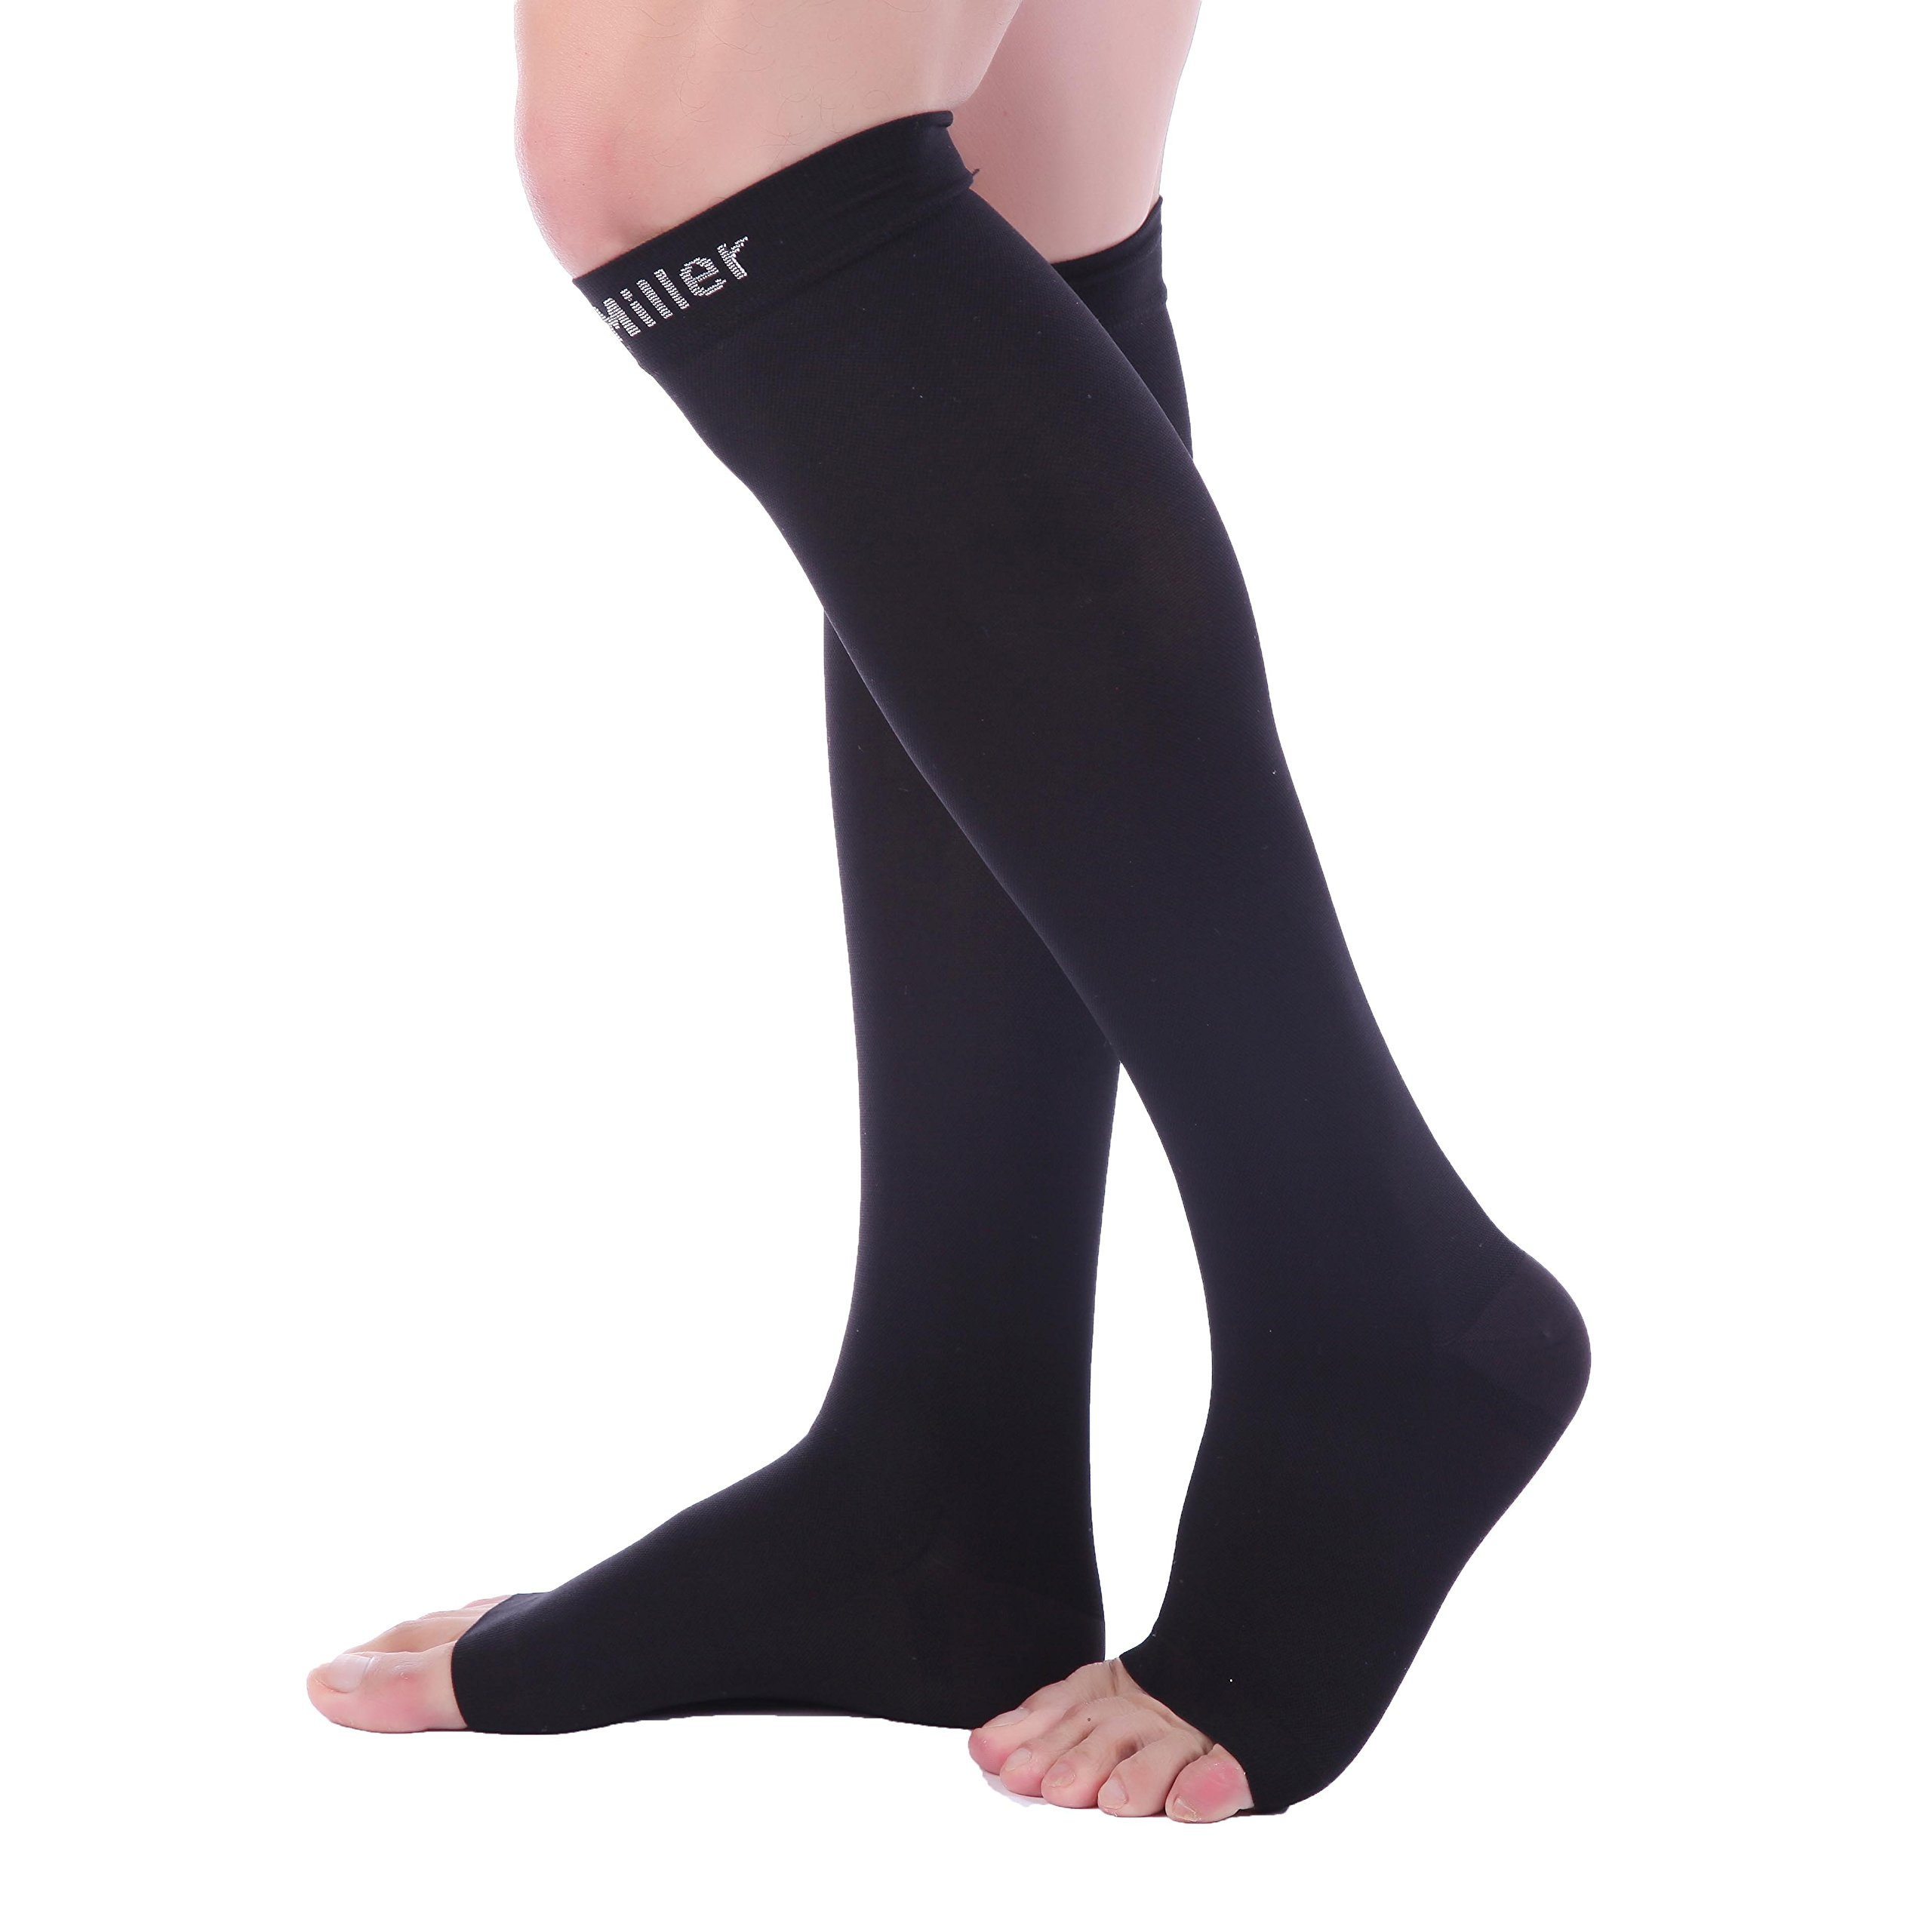 1f51a0f543 Doc Miller Premium Open Toe Compression Sleeve 1 Pair 20-30mmHg Strong Calf  Support Graduated Pressure for Sports Running Muscle Recovery Shin Splints  ...